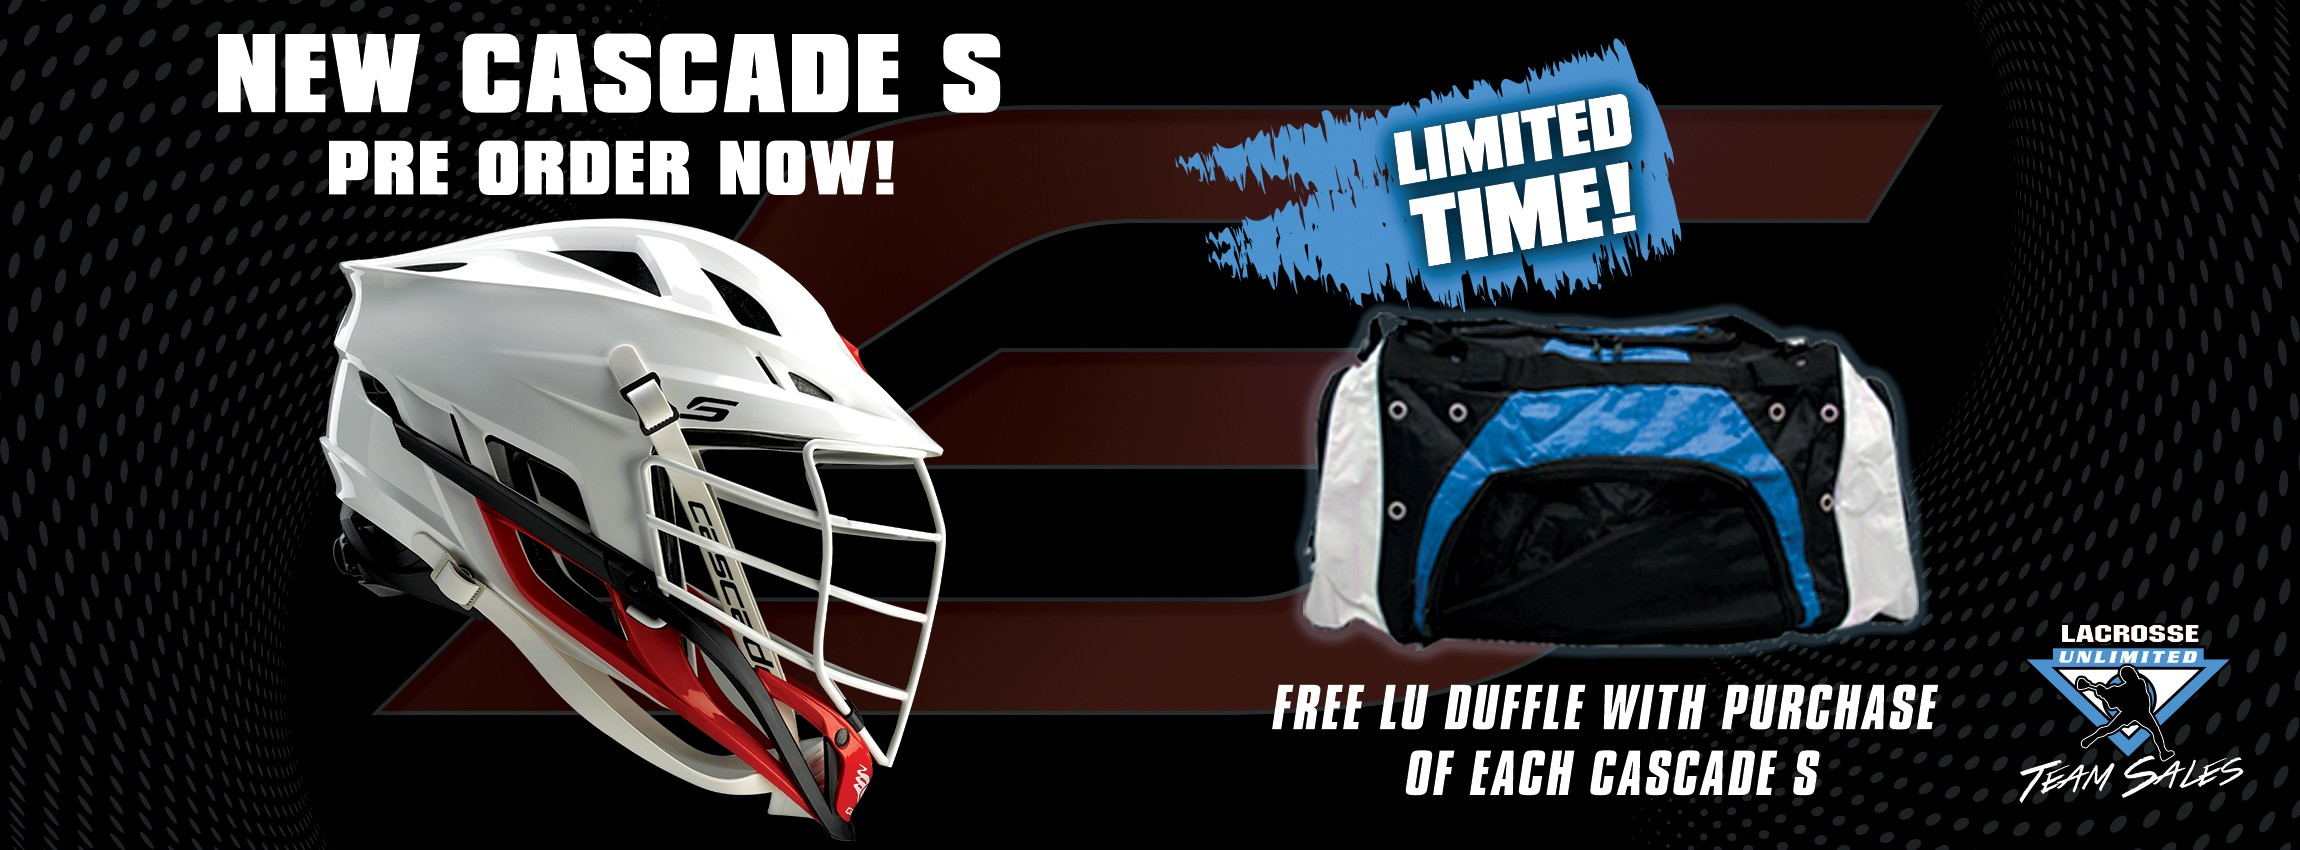 Get New Cascade S Now and Get Free Bag.